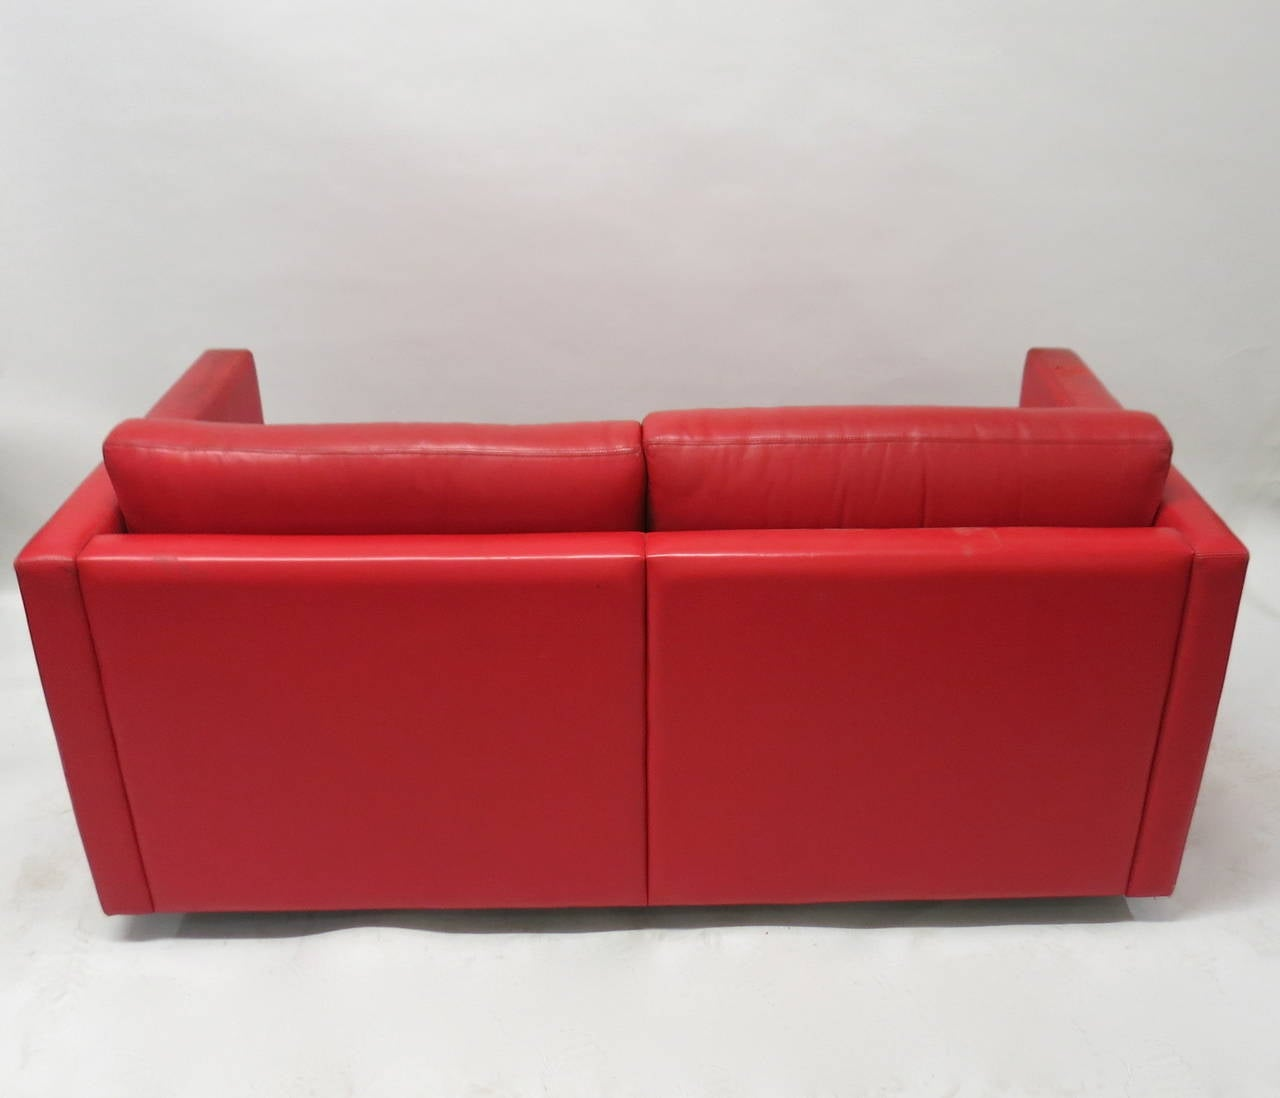 red leather two seater sofa slipcovers for sectional couch or circa 1970 made in usa